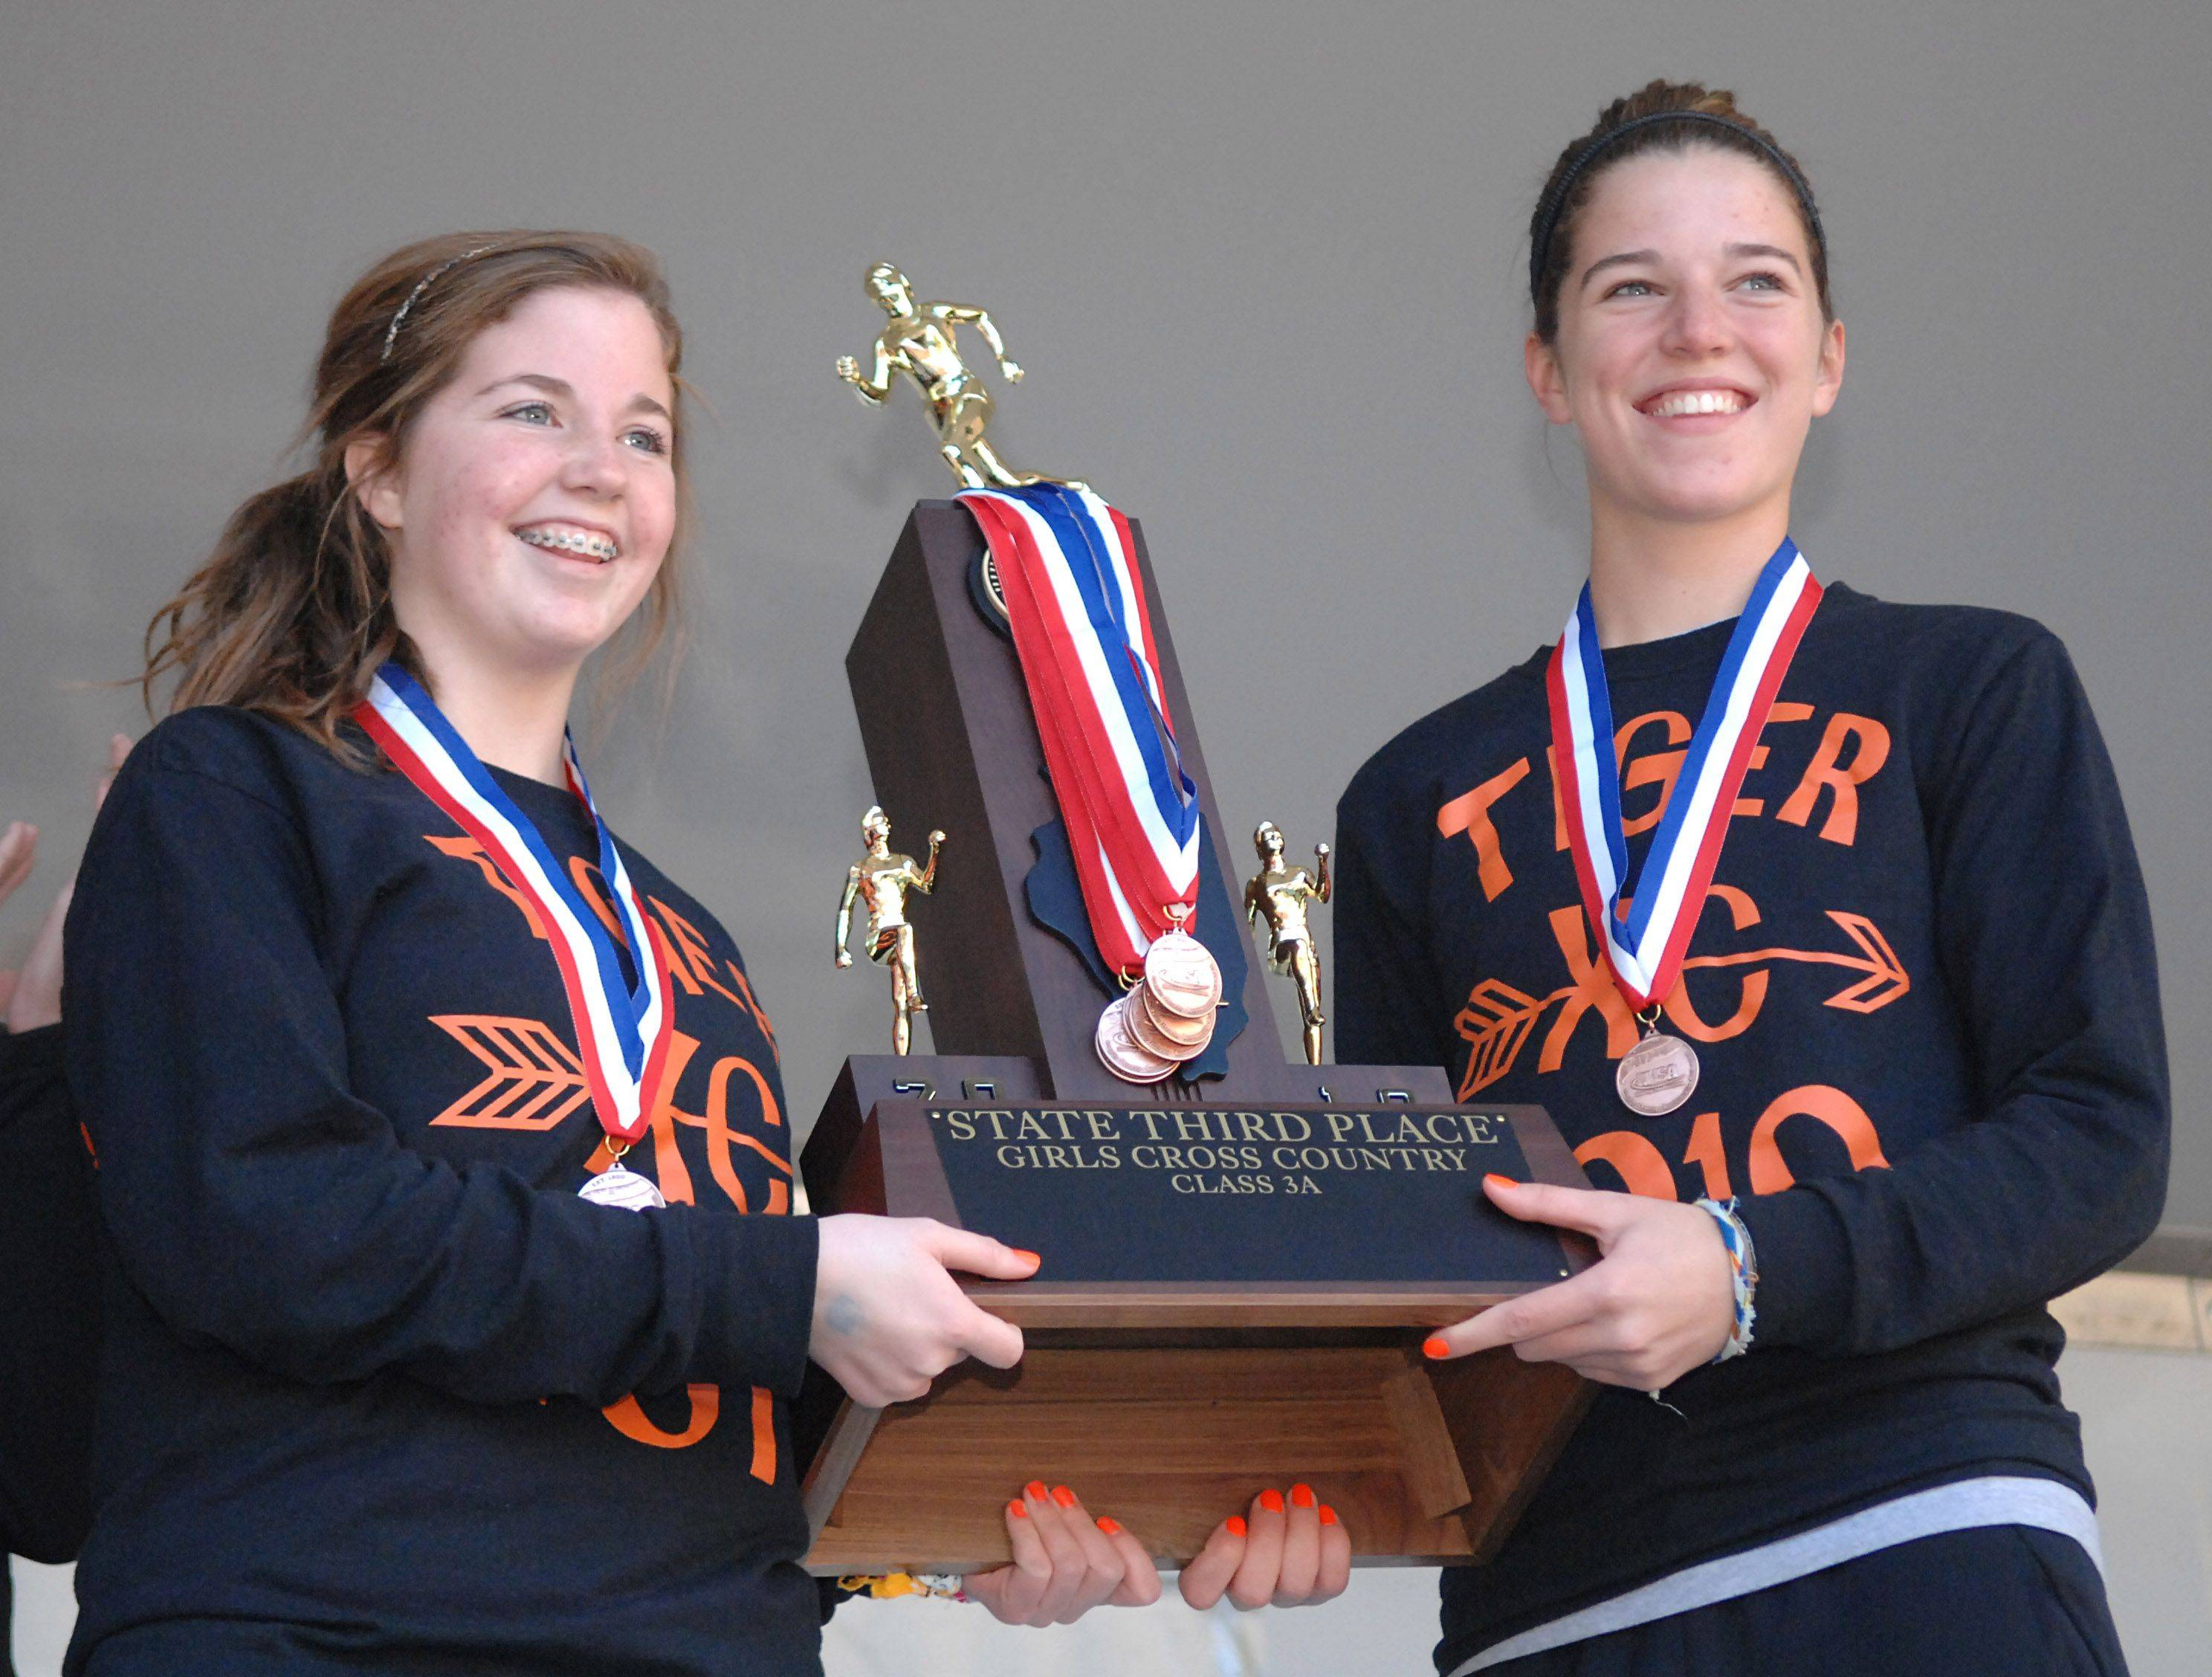 Warrenville South's Bridget Kelly, left, and Maddie Williams, both seniors, accept their team's third place cross country 3A state trophy in Peoria on Saturday, November 6.